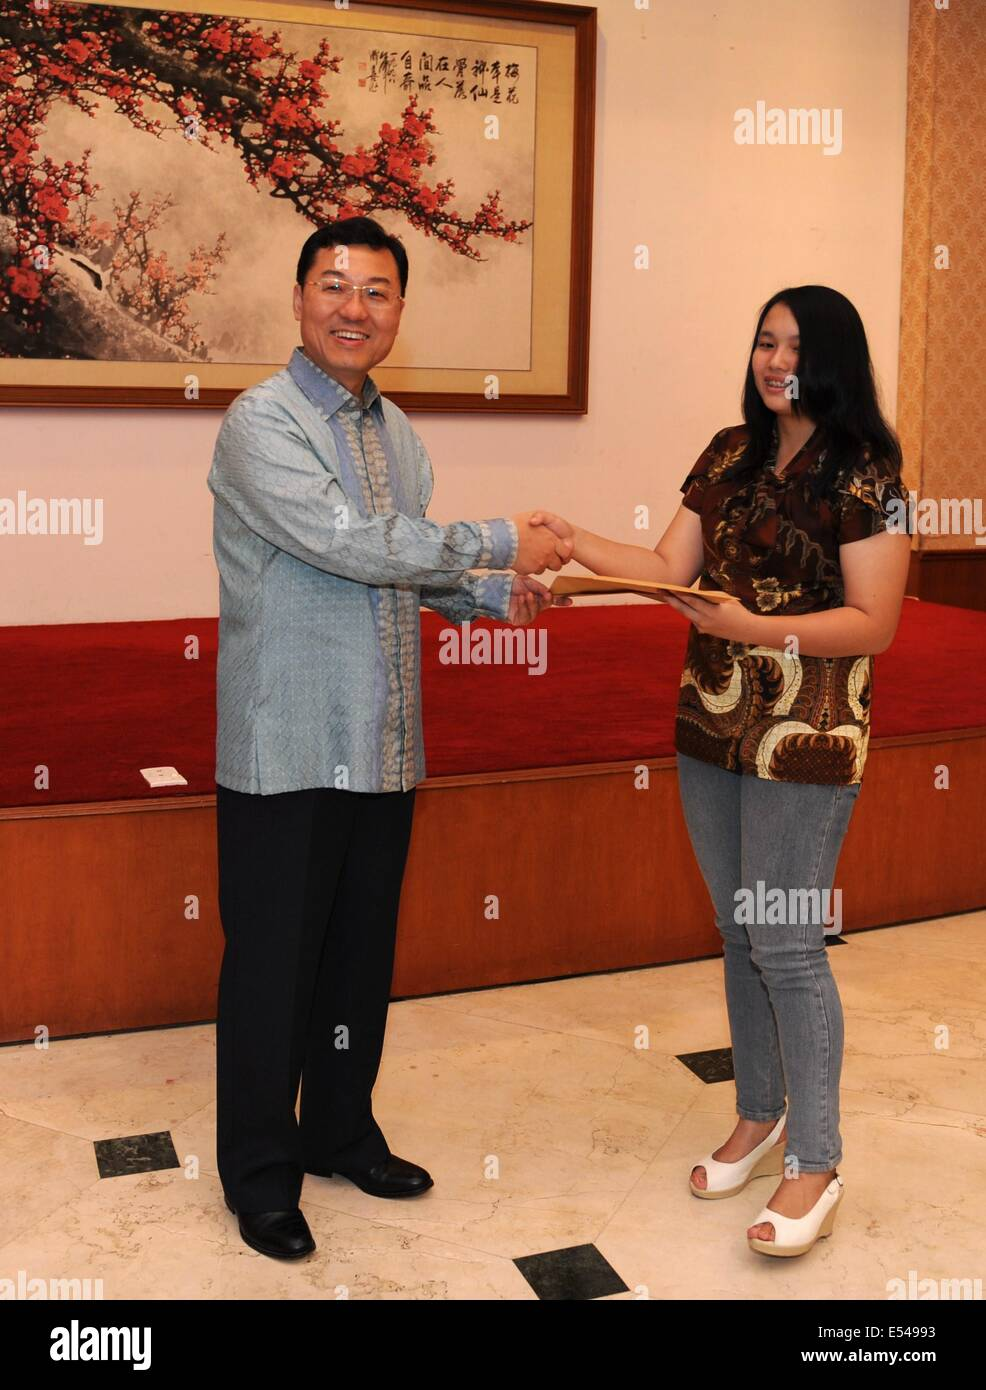 Jakarta, Indonesia. 20th July, 2014. Chinese ambassador to Indonesia Xie Feng (L) awards an Indonesian student with - Stock Image